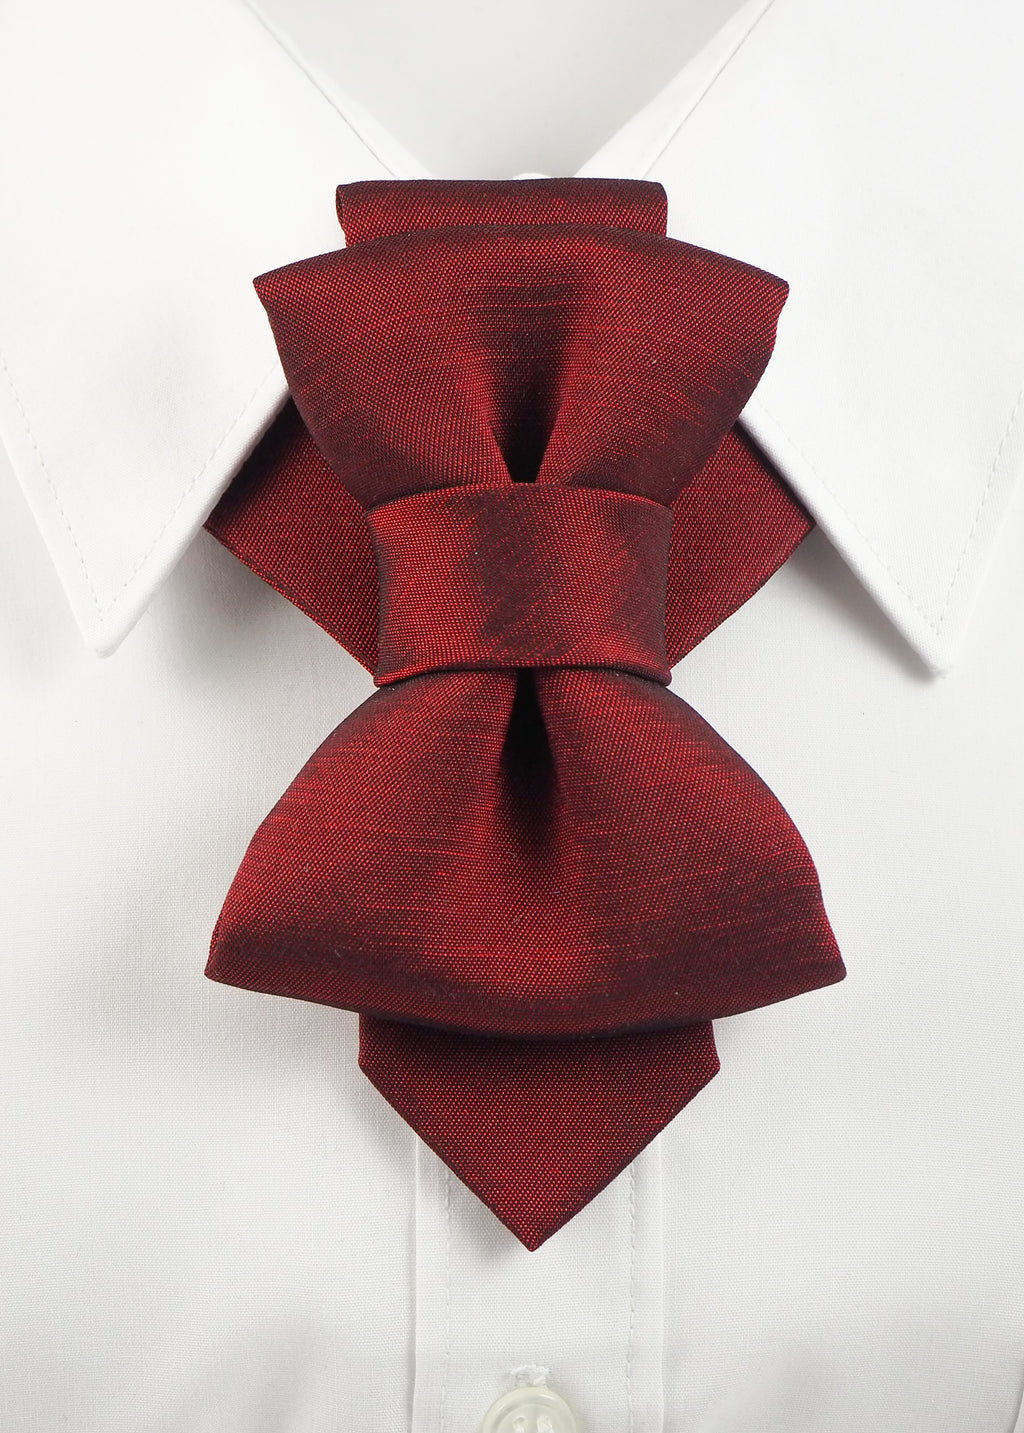 Bow Tie, Tie for wedding suite BORDEAUX I hopper tie Bow tie